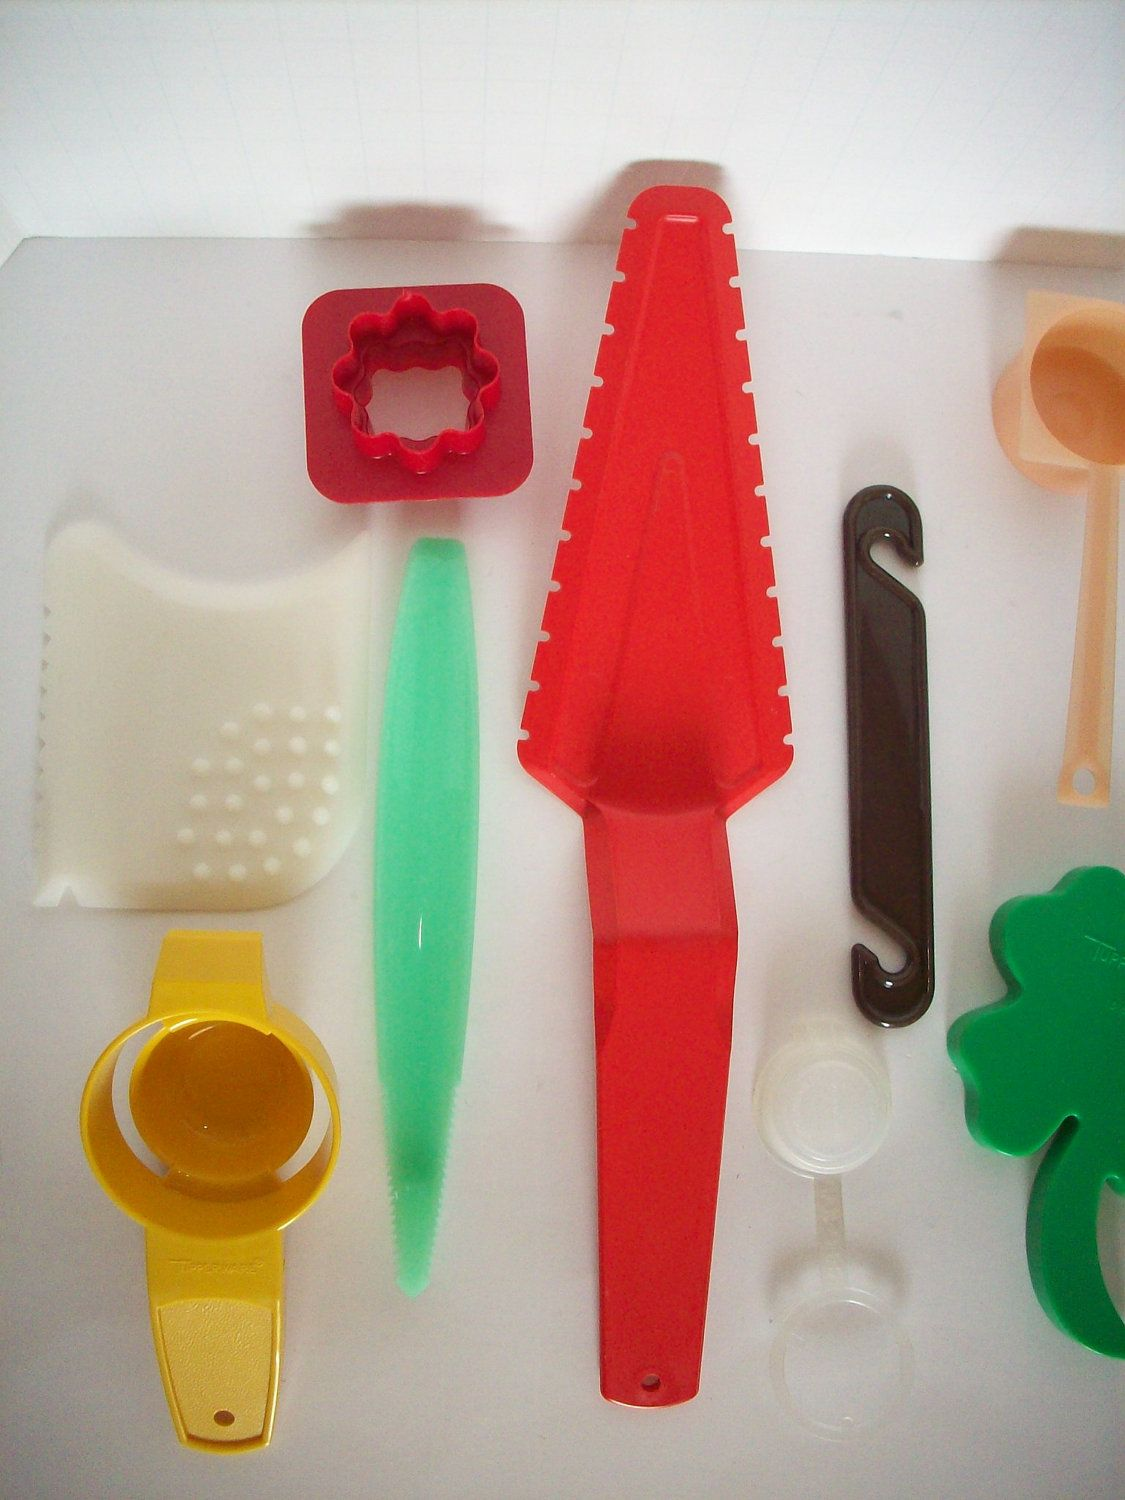 Pin By Carlo Blackmore On Design From Childhood Vintage Tupperware Tupperware Plastic Kitchen Utensils